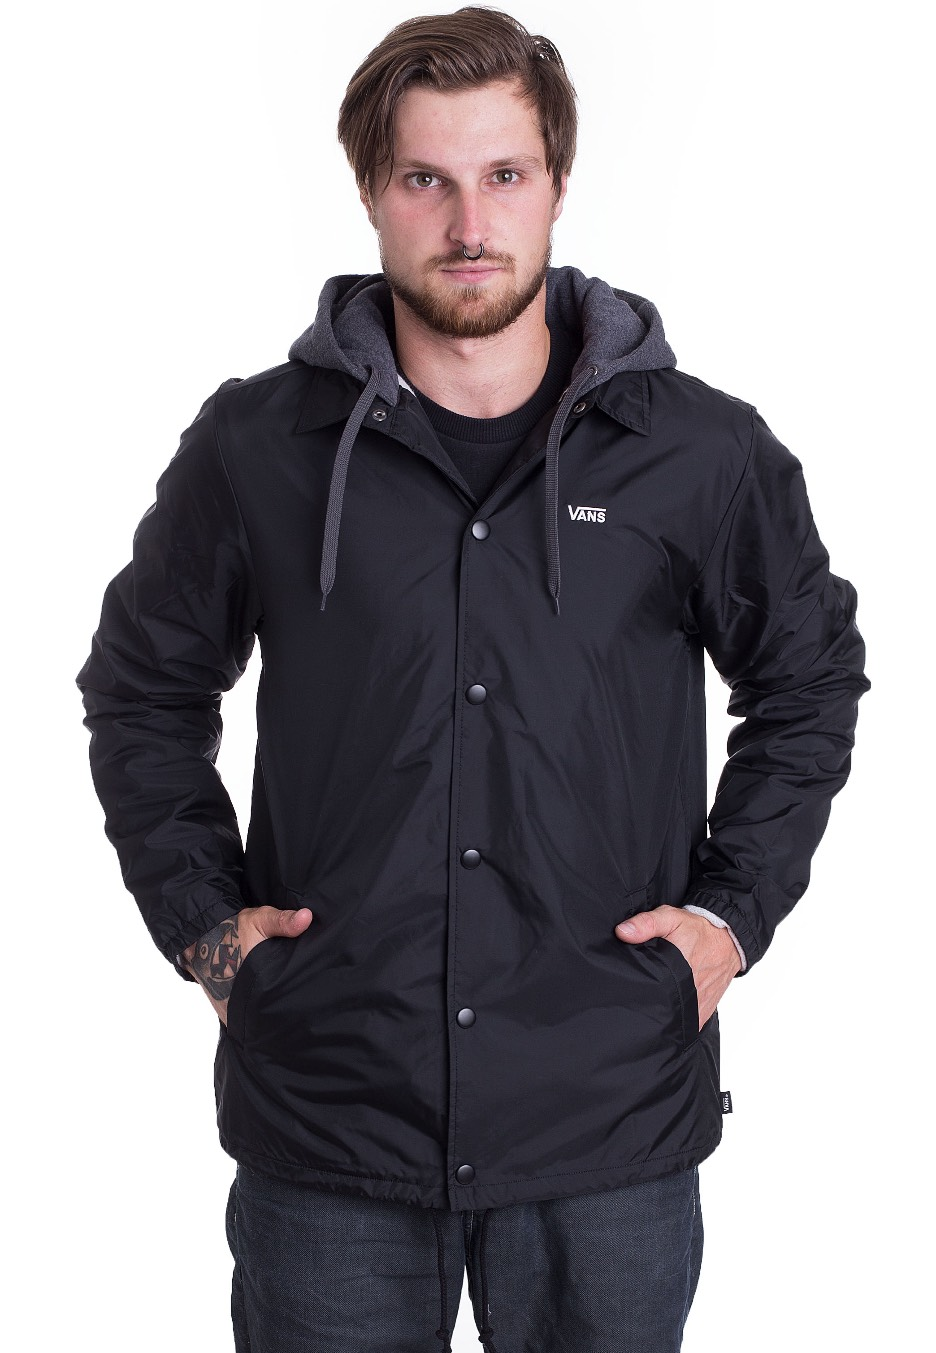 6521e7710e5 Vans - Riley Black - Jacket - Impericon.com UK